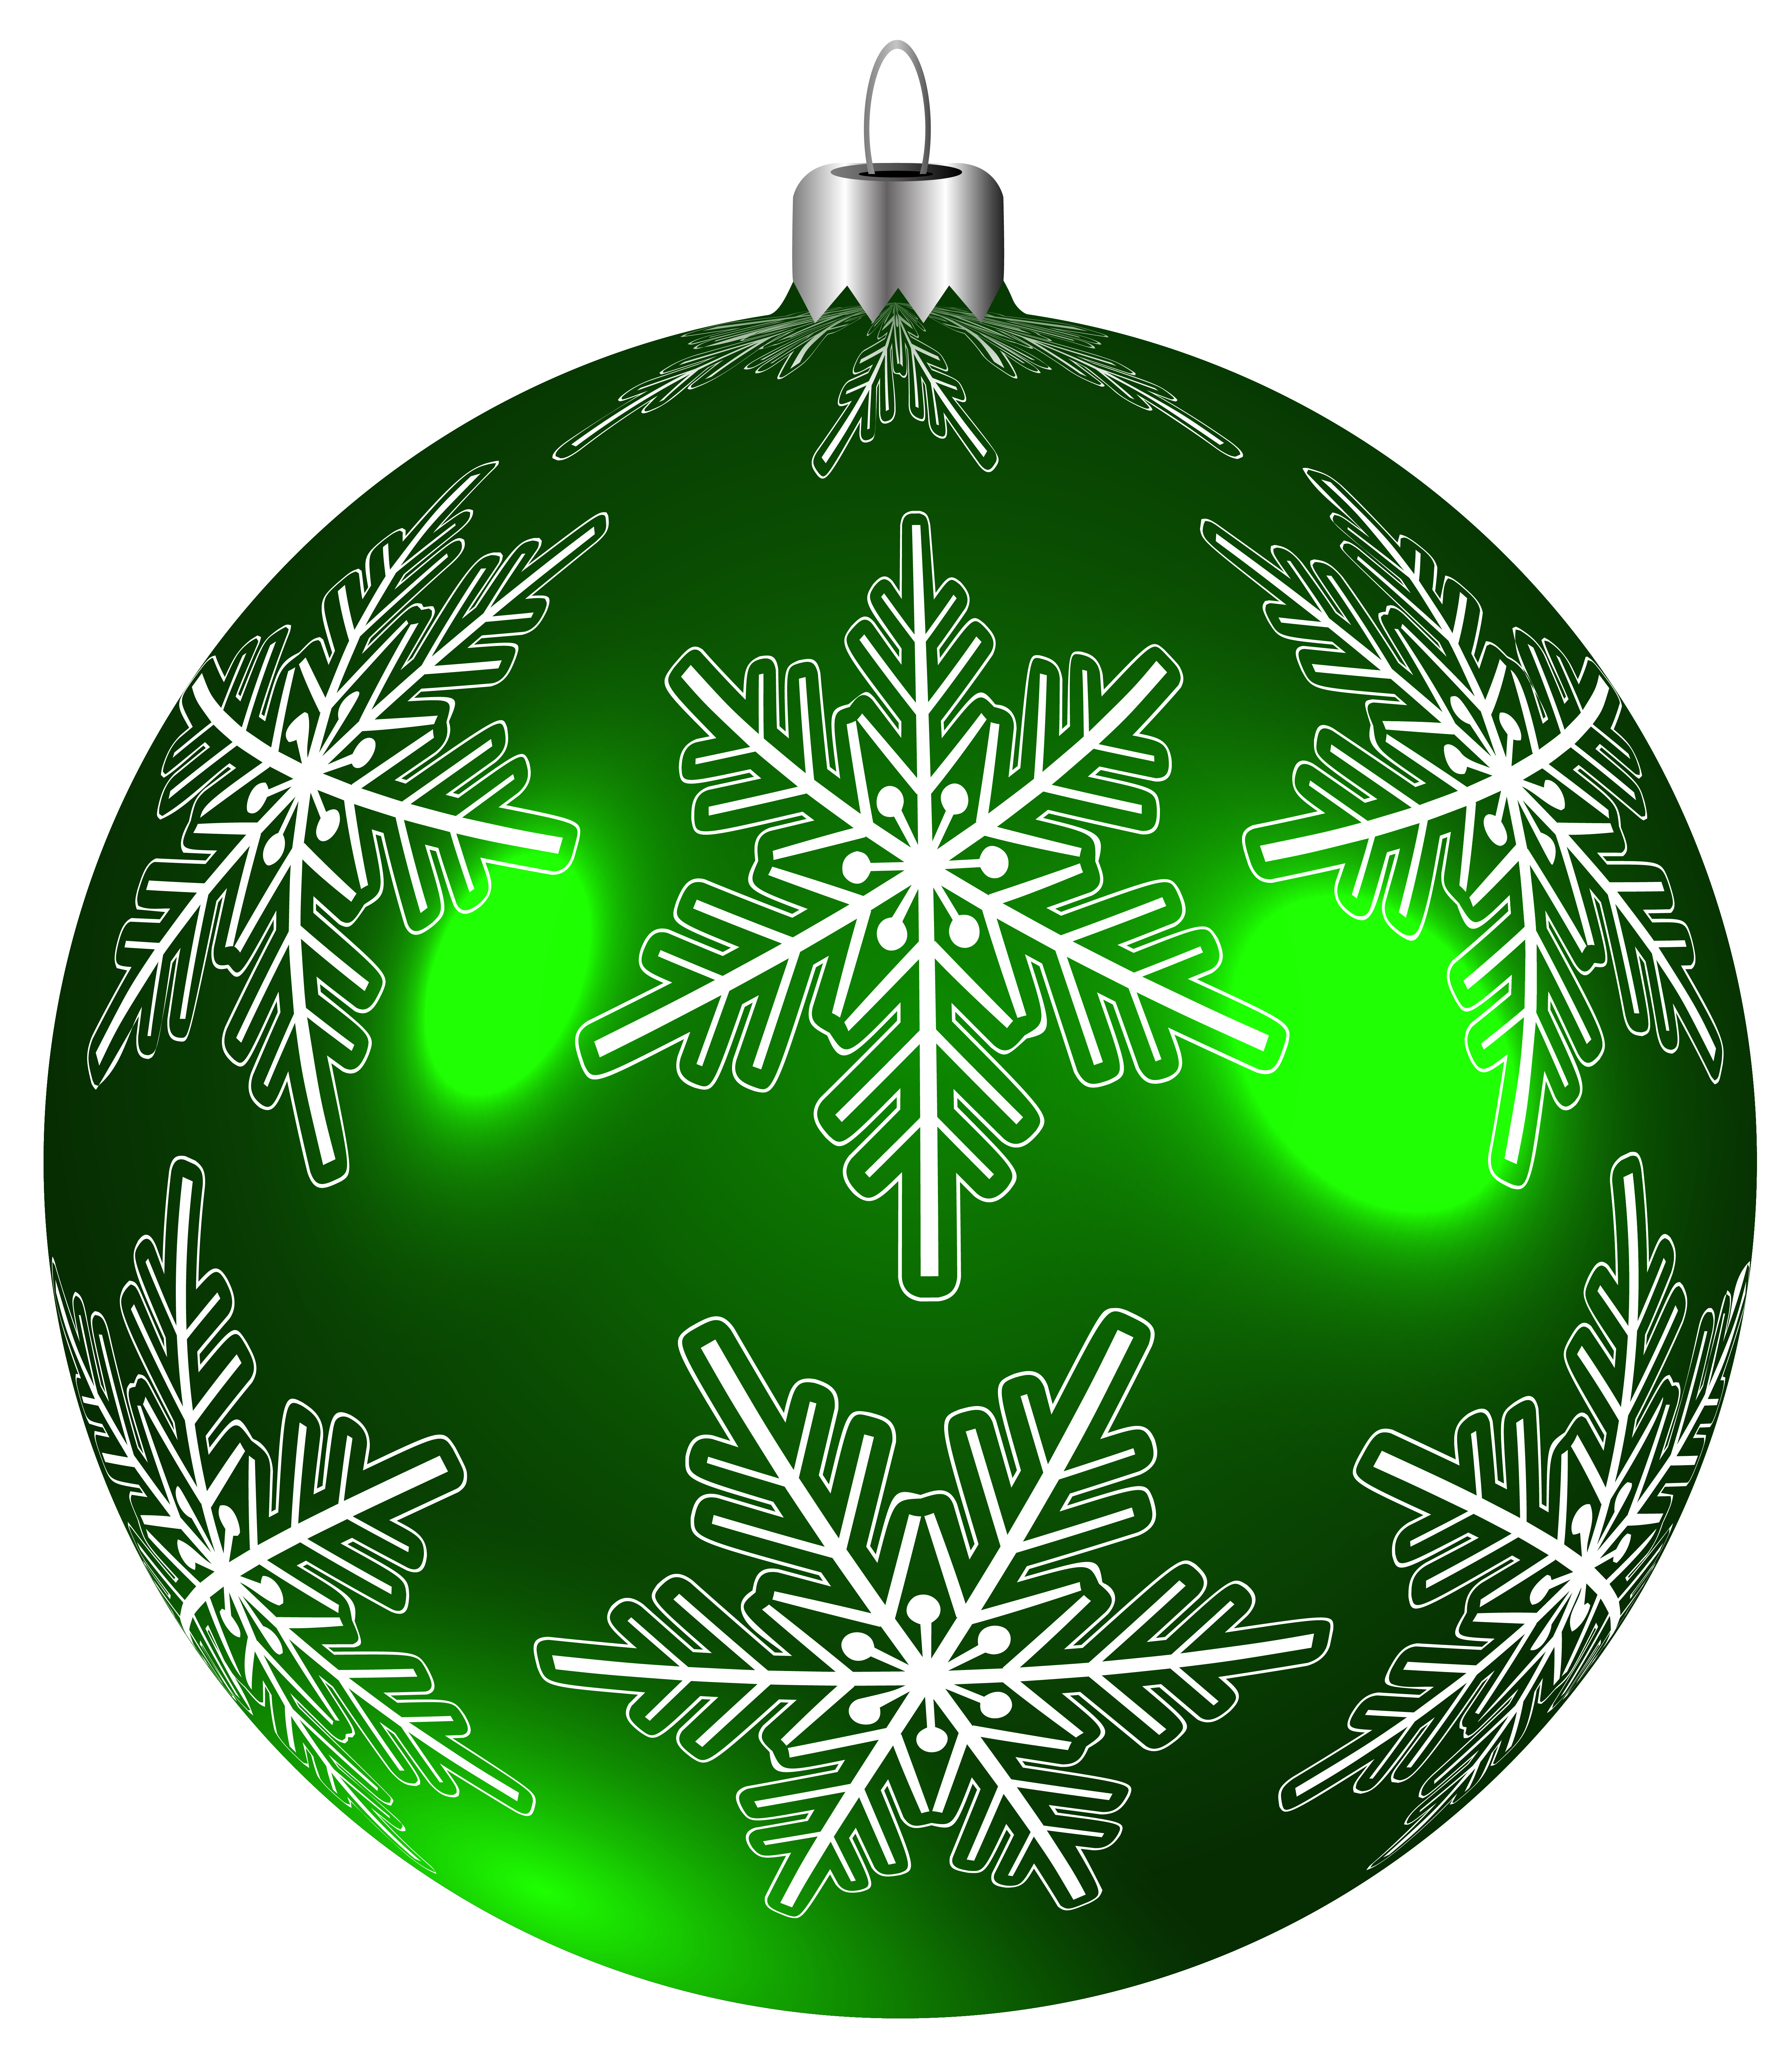 Green snowflake png clipart vector transparent Beautiful Green Christmas Ball PNG Clip-Art Image | Gallery ... vector transparent